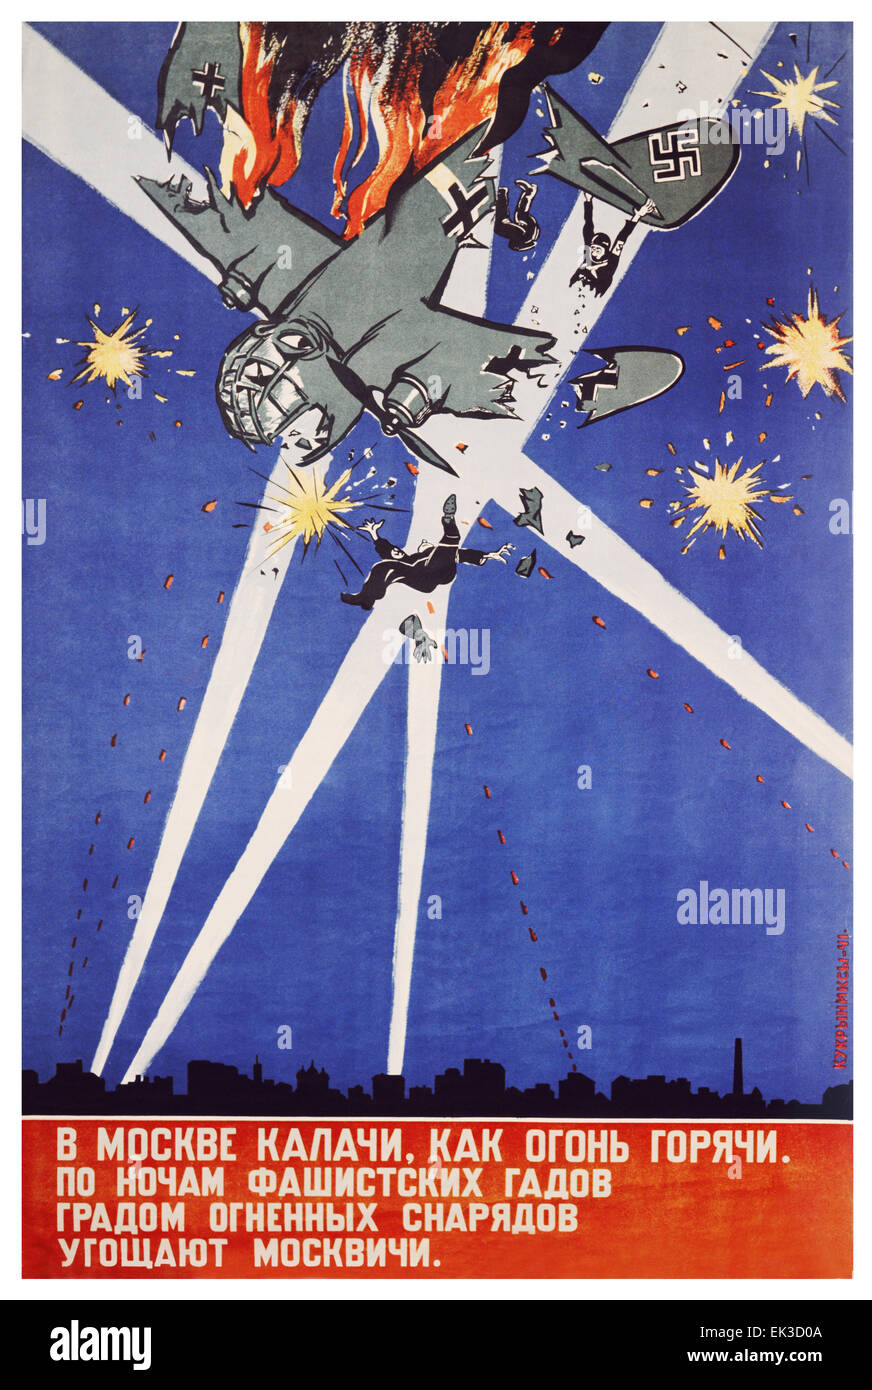 USSR. The Moscow kalatch is not of their batch, a Soviet propaganda poster by the Kukryniksy. Stock Photo